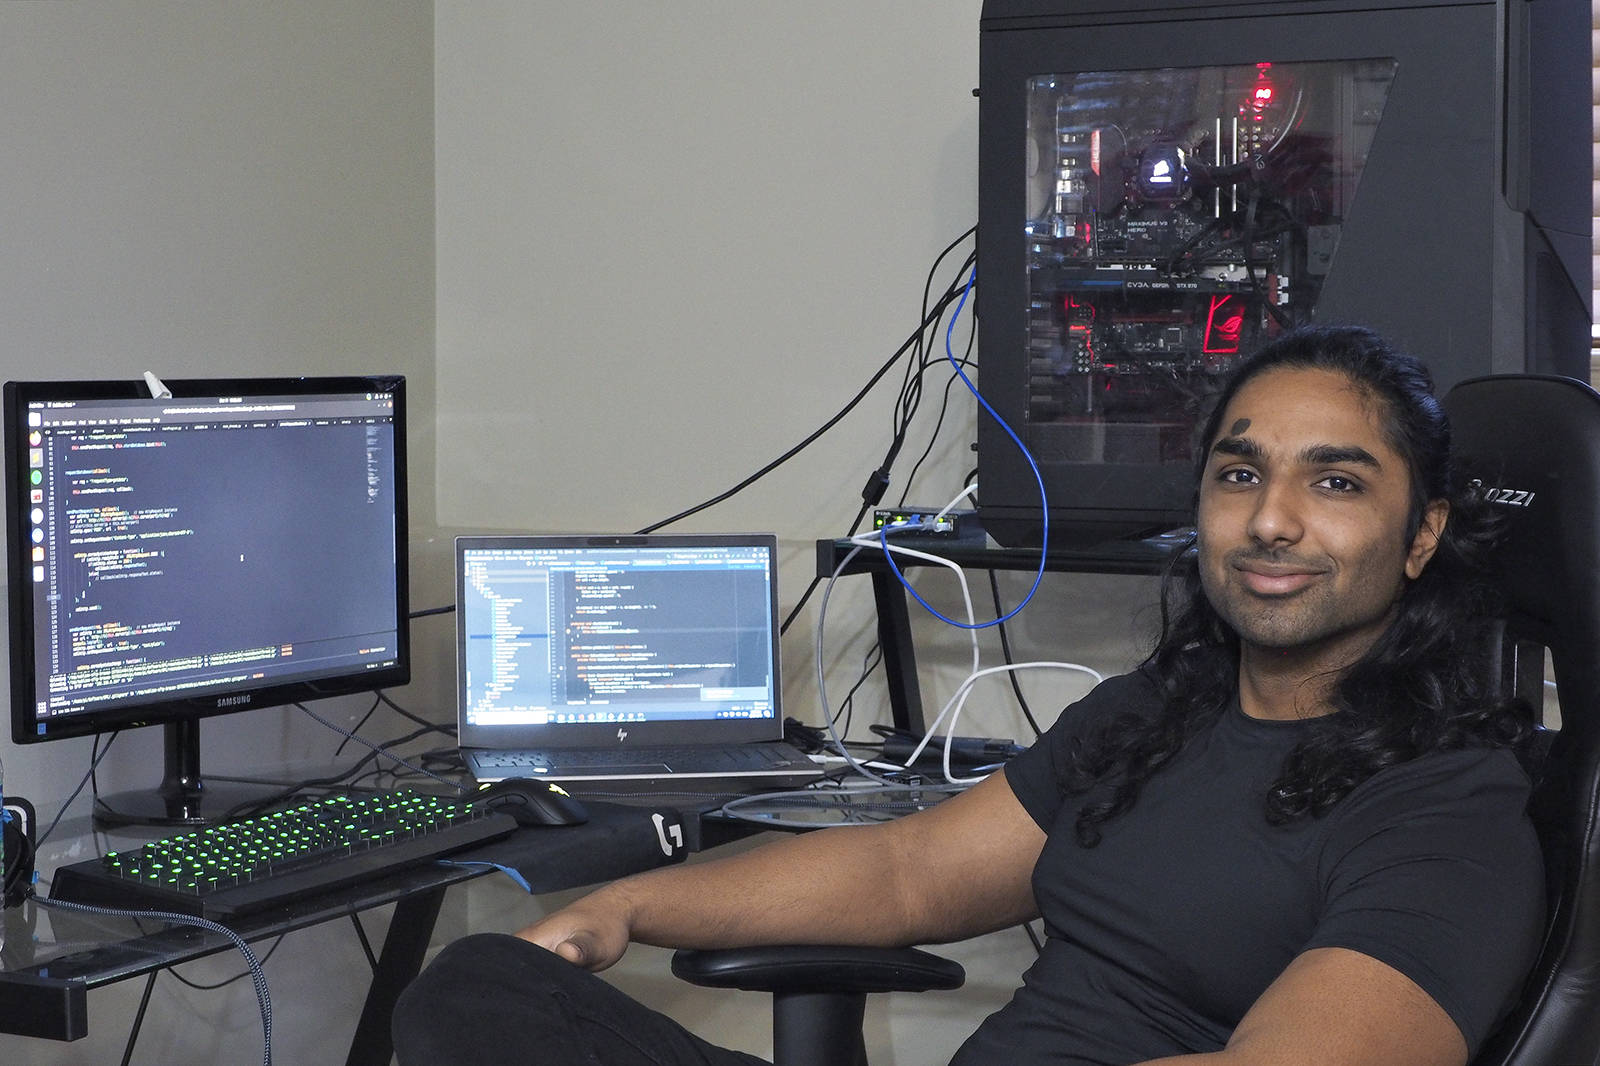 Ahmad Naveed, a mechanical engineer from Nanaimo, has created Nanaimo Thief Tracking, an online application that allows anyone to plot locations and share details about thefts. (CHRIS BUSH/The News Bulletin)